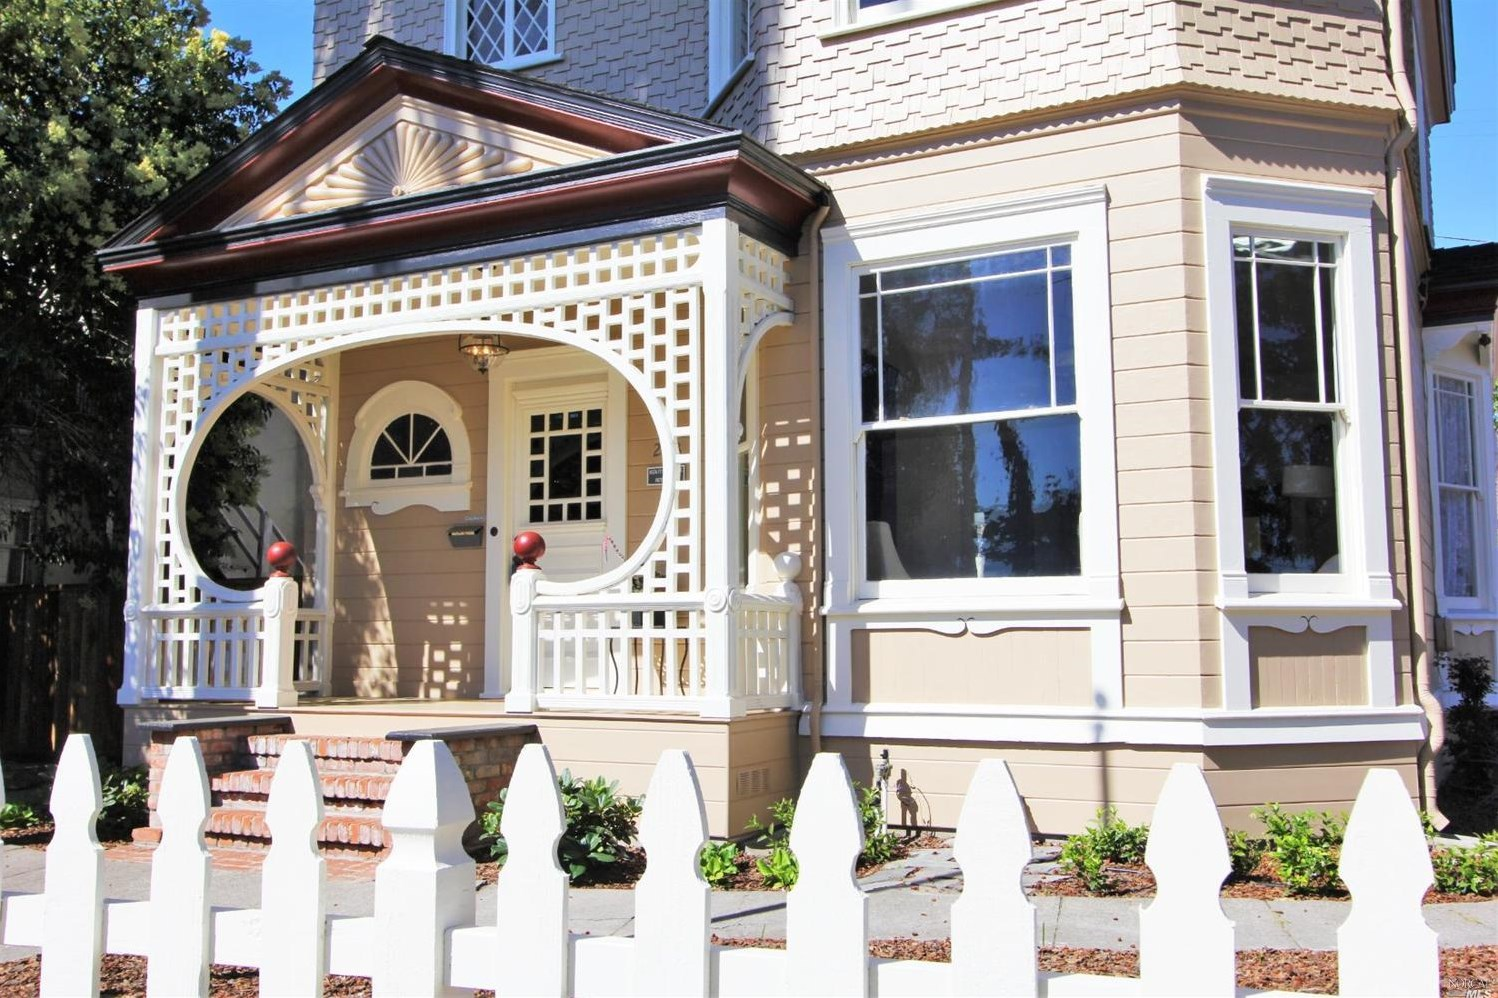 An 1895 Queen Anne Victorian Revival is Listed at 1.2M in ... Queen Anne Home Plans Energy Efficient on french eclectic home plans, gothic cottage home plans, quad level home plans, queen anne floor plans, greek revival home plans, eastlake home plans, one-bedroom cottage home plans, clayton home plans, edgewood home plans, queen anne cottage plans, saltbox home plans, creole cottage home plans, rustic home plans, back split home plans, modernist home plans, queen anne building plans, french second empire home plans, cordova home plans, washington home plans, tudor house plans,